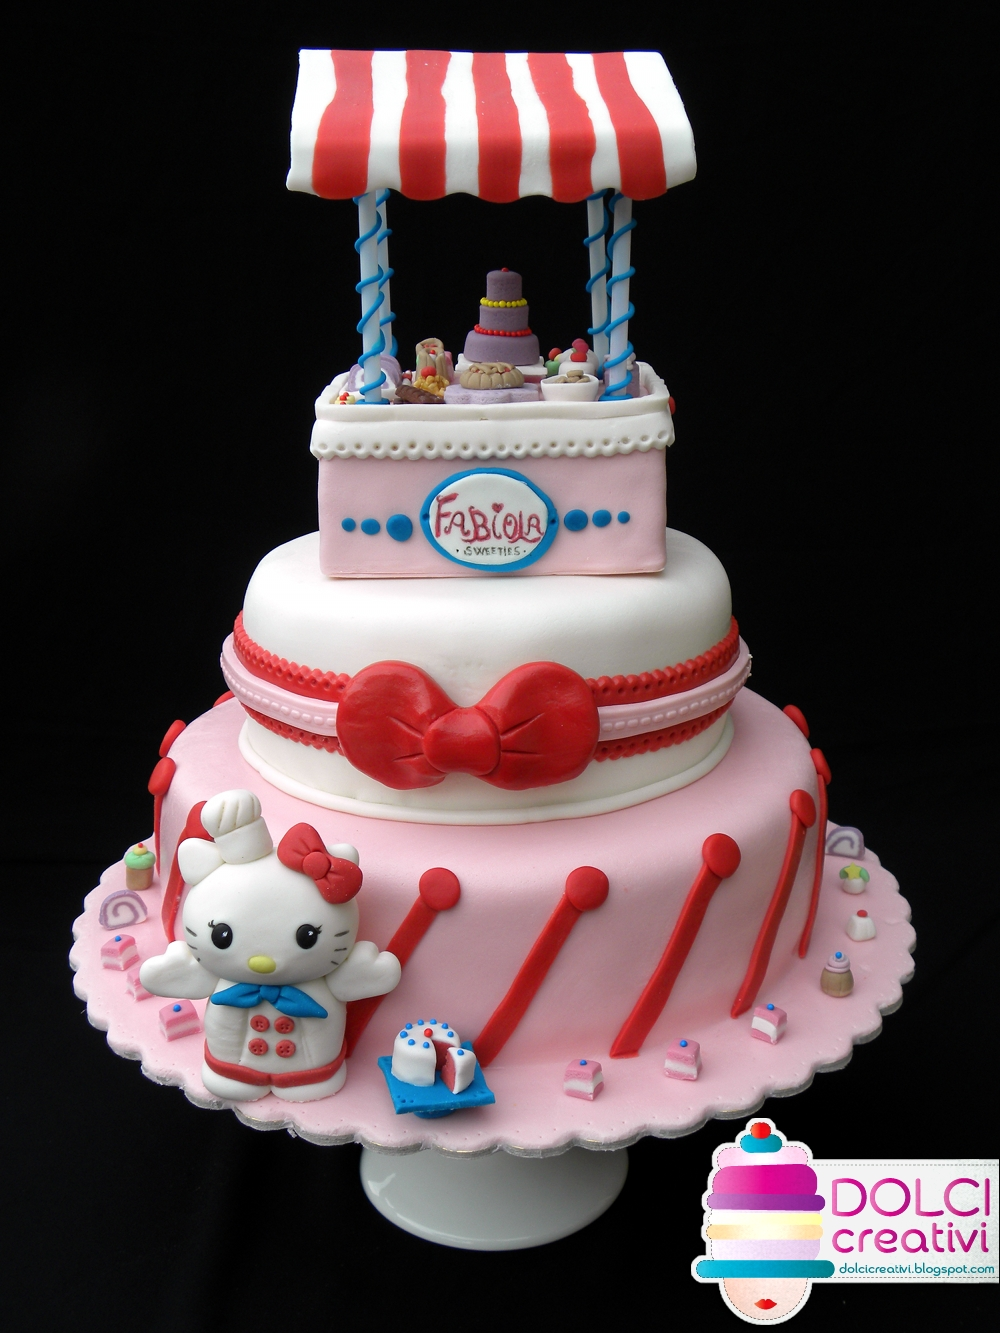 Dolci Creativi Sar Torte Decorate Torta Hello Kitty Bakery